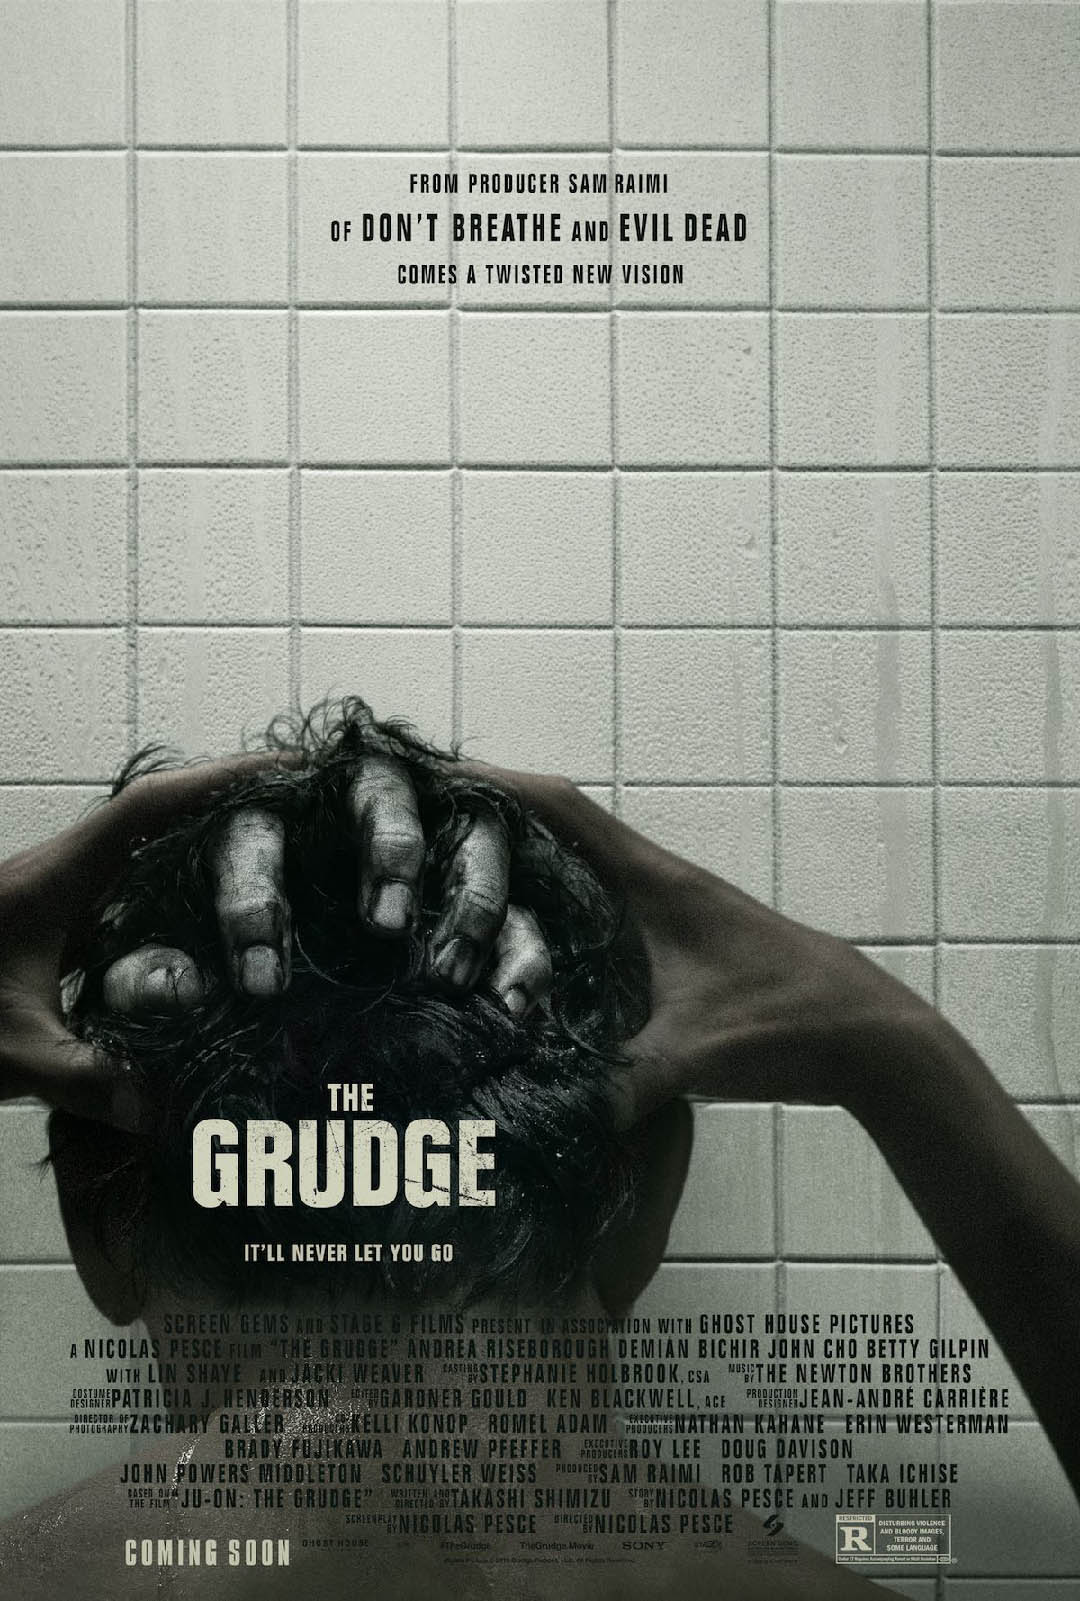 The Grudge 2020 Full Movie Free Online